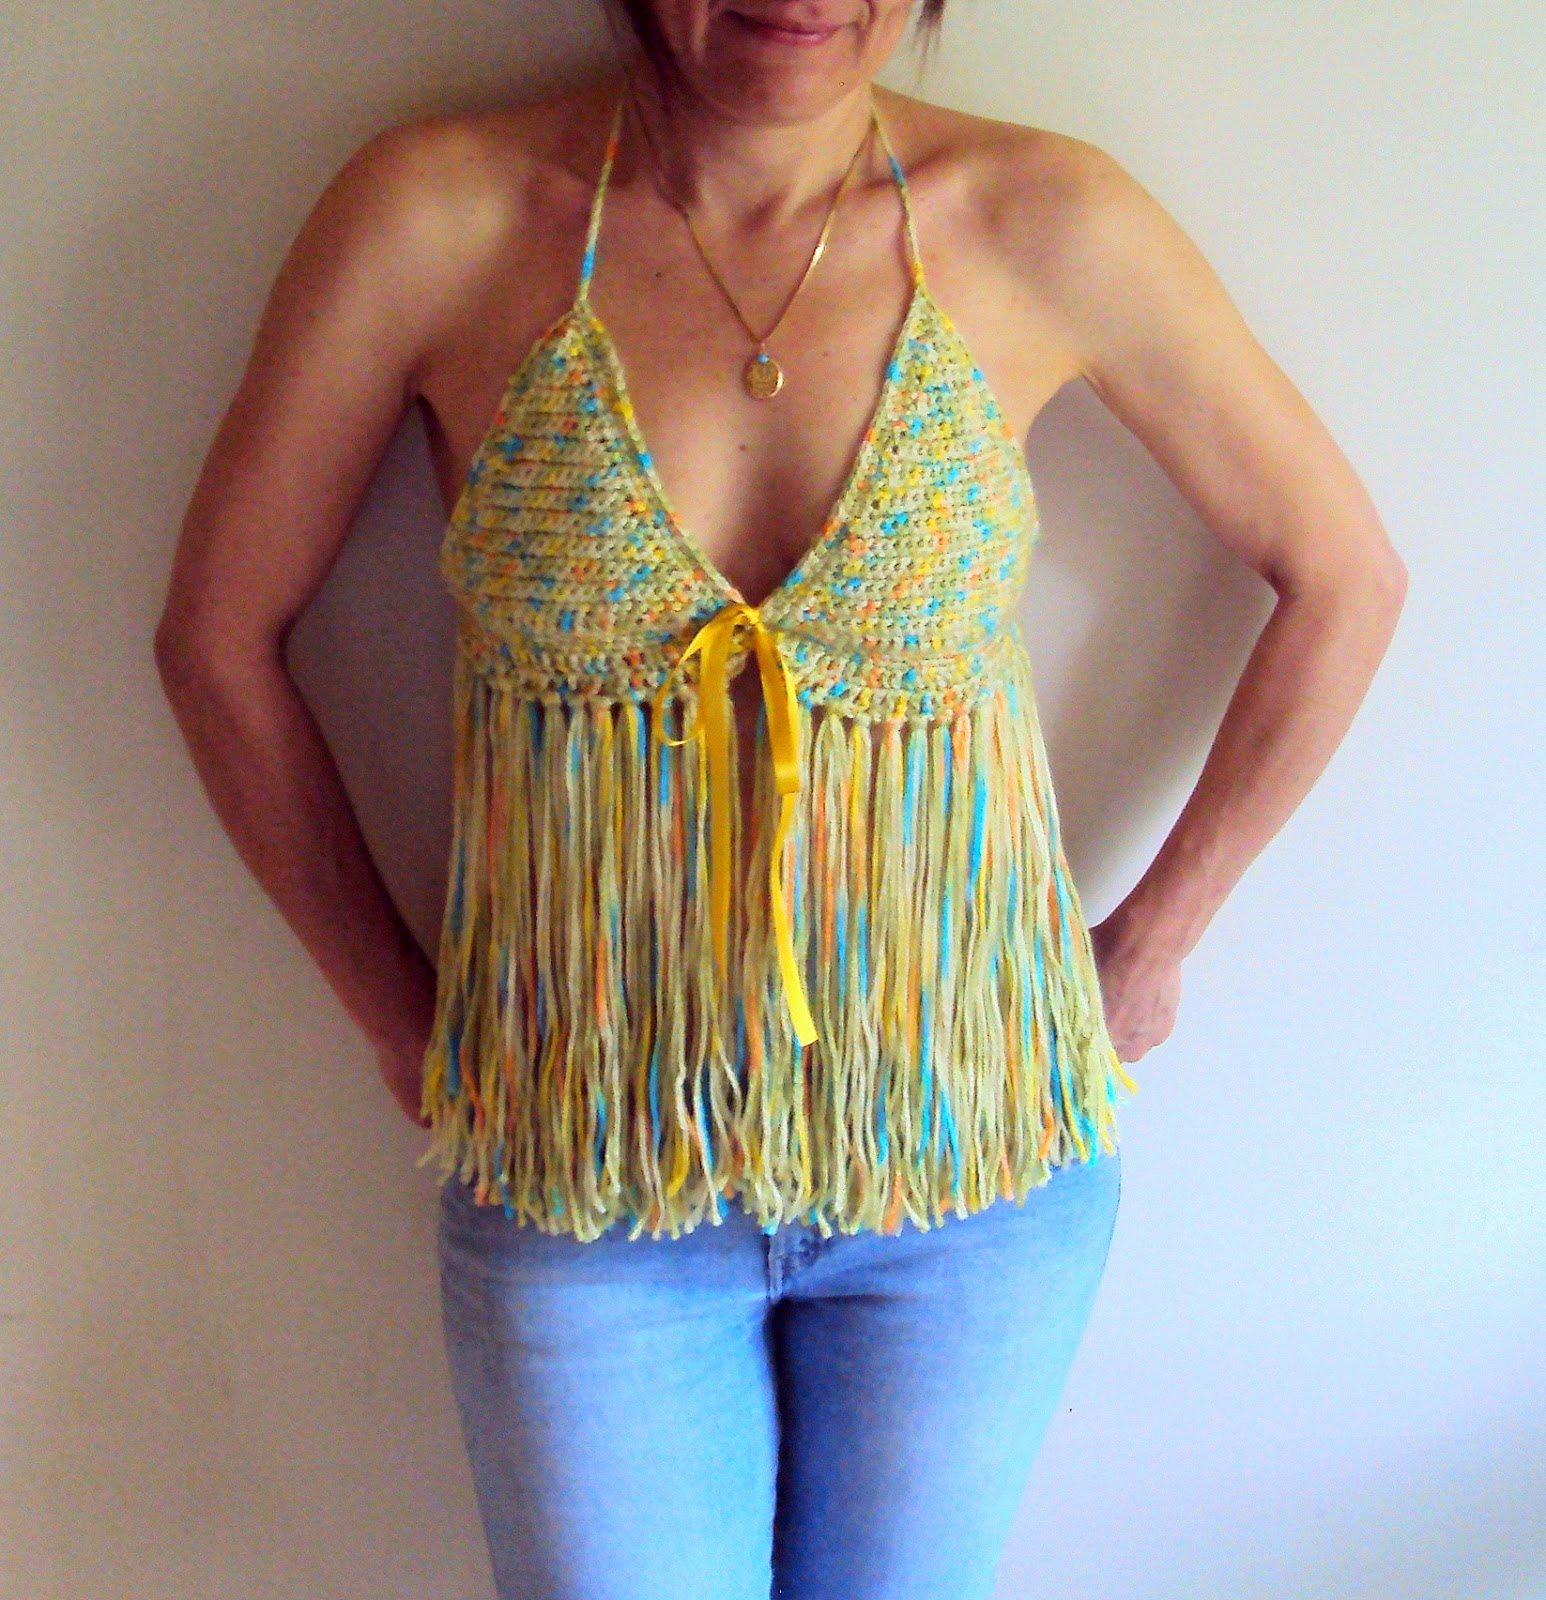 https://www.etsy.com/listing/155202655/crochet-festival-top-fringe-top-boho?ref=shop_home_active_14